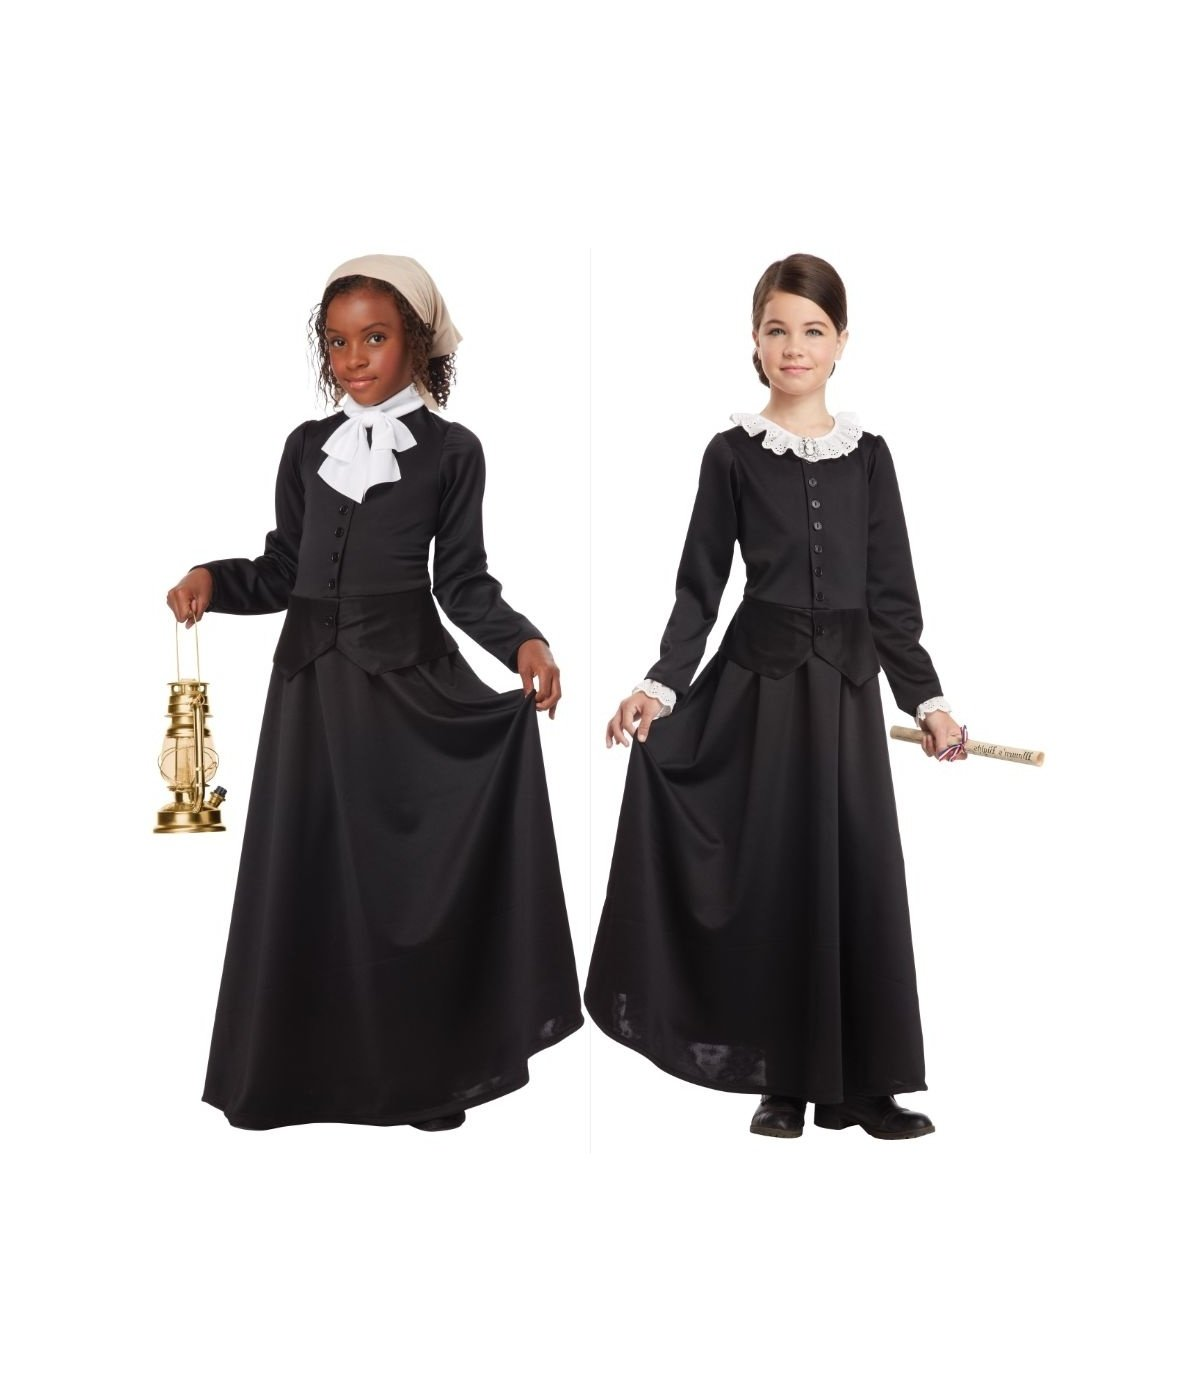 10 Great Susan B Anthony Costume Ideas susan b anthony and harriet tubman girls costume combo 2020